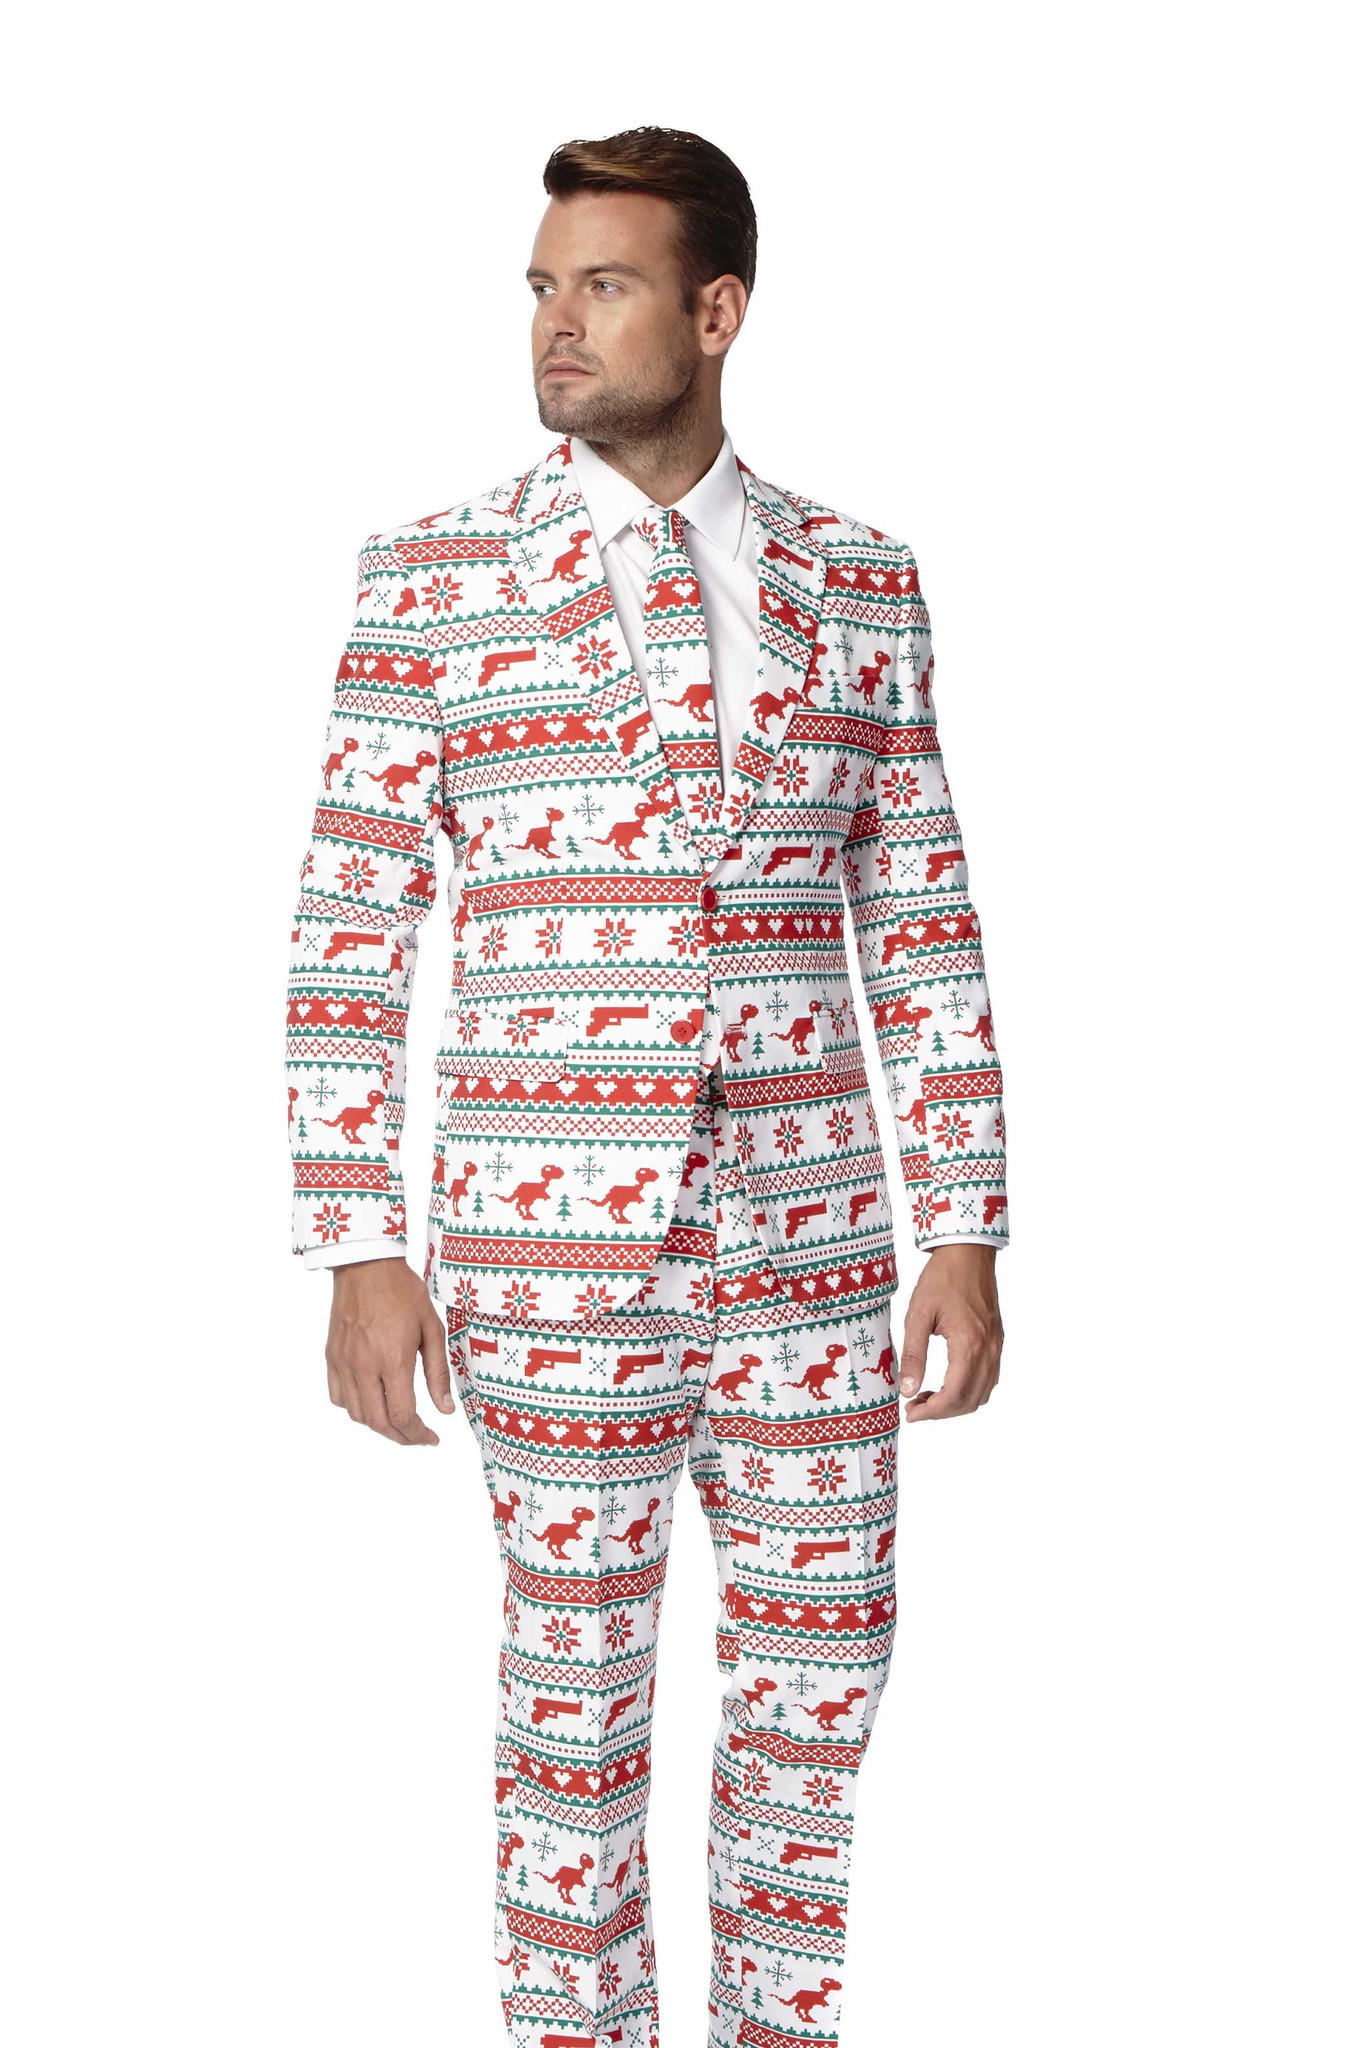 76865b781 The O.G. Kringle Ugly Christmas Sweater Suit